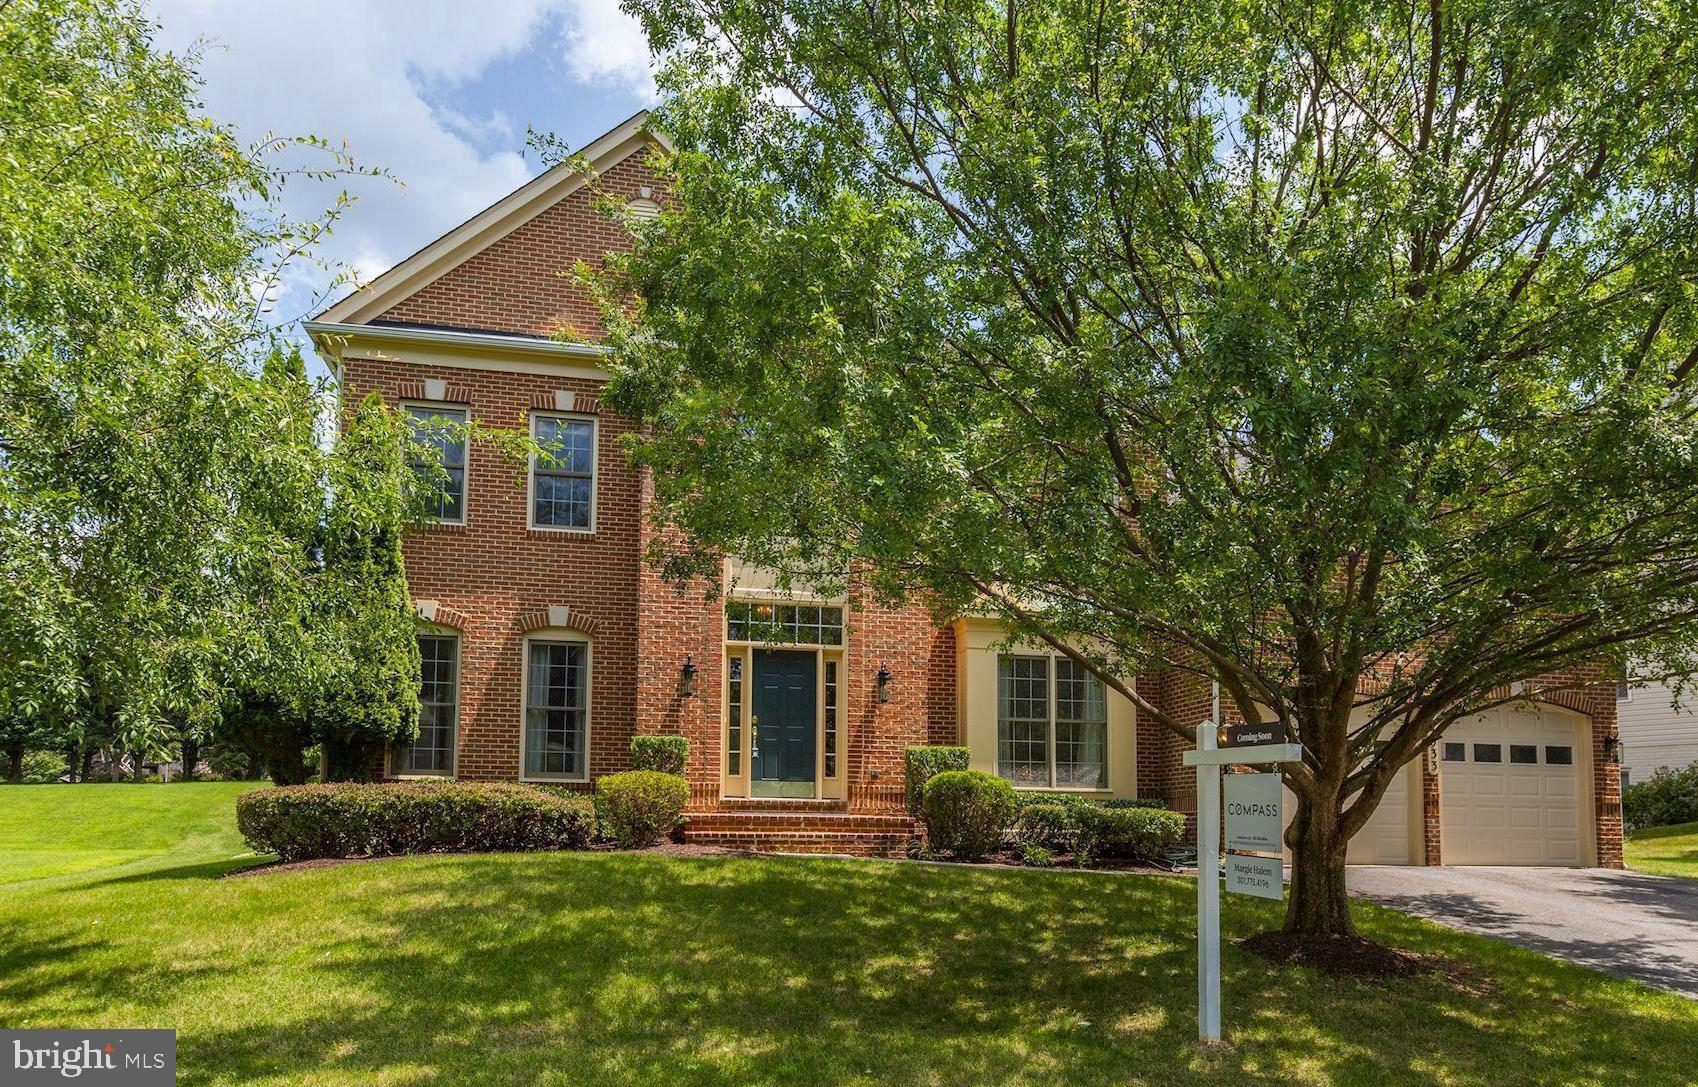 14033 WEEPING CHERRY DRIVE, ROCKVILLE, MD 20850